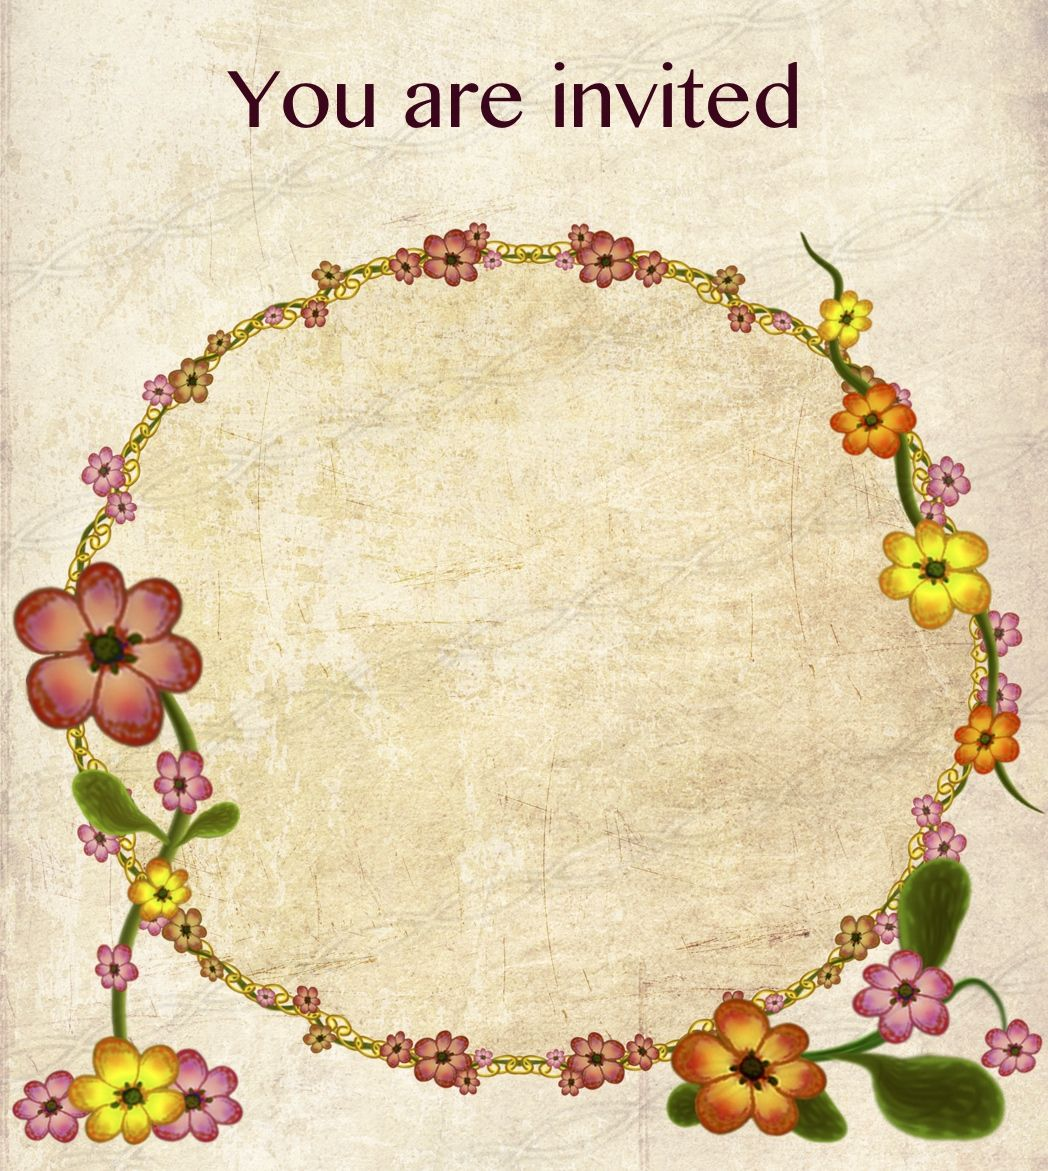 Instant download png flower frame clipart laurel wreath bloom digi floral invitation card designing invitation accessories anniversaire filles set of over 30 pngs flower embellishments stopboris Choice Image